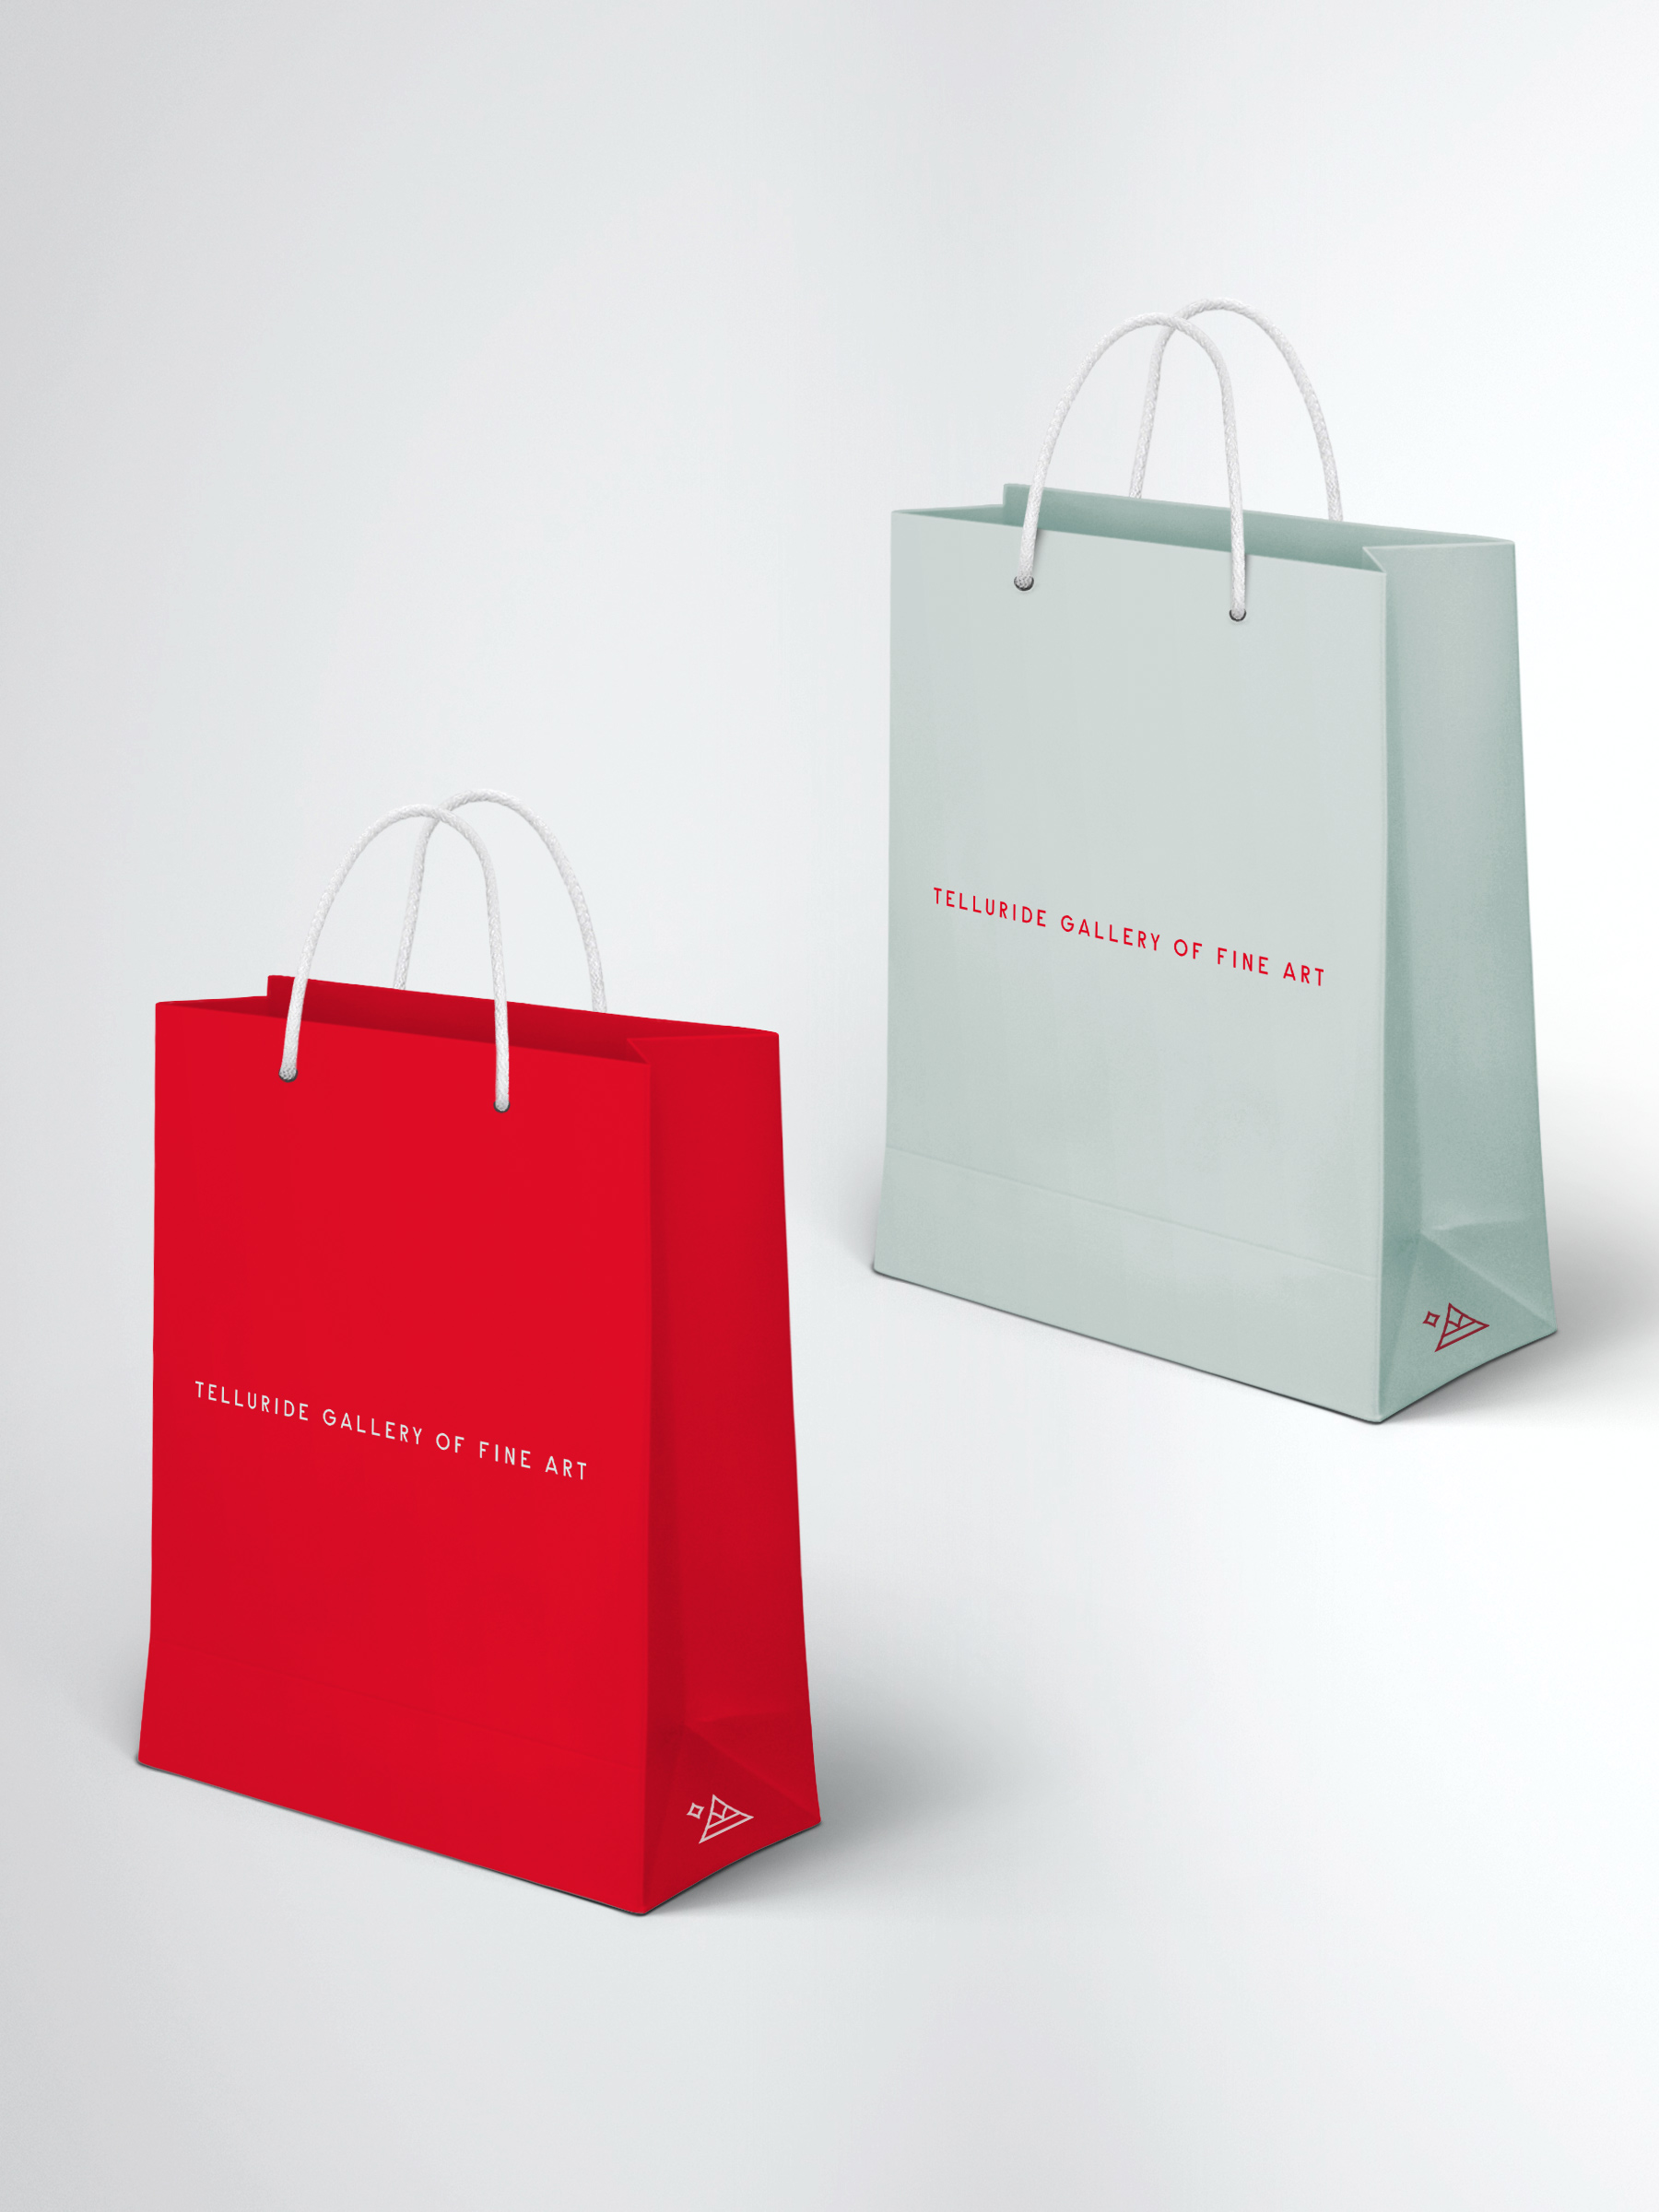 TellurideGallery_shoppingbag